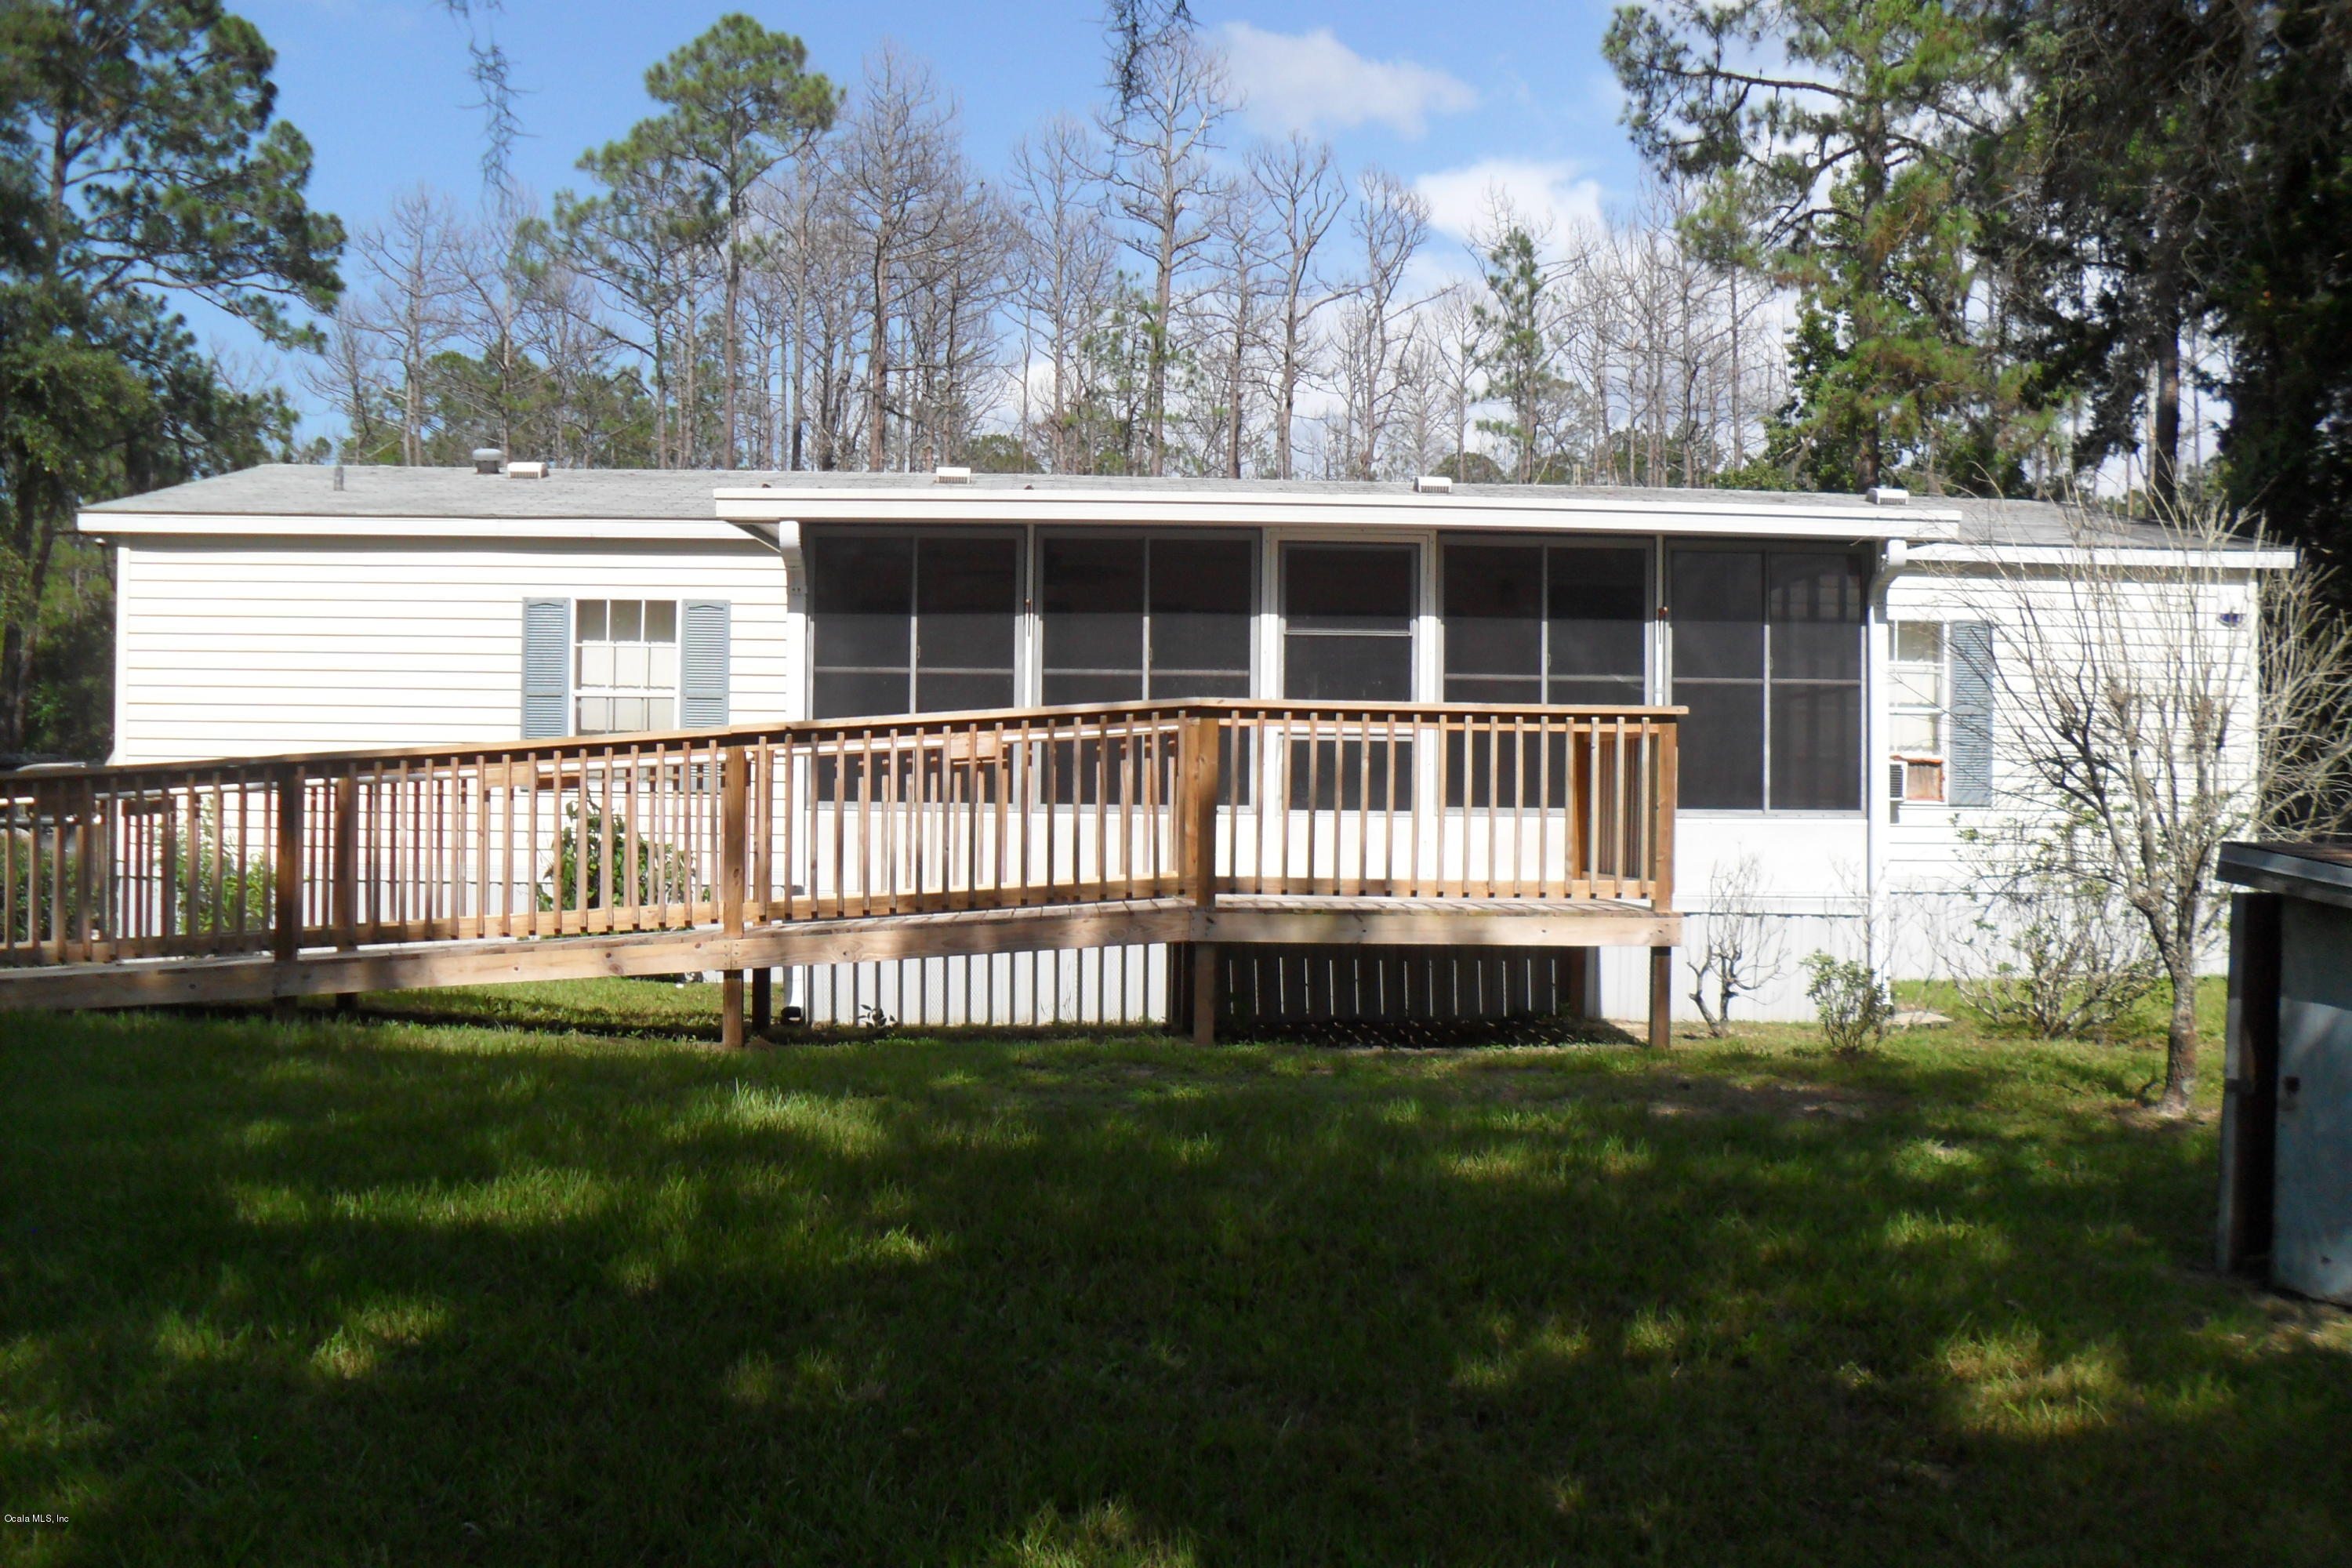 23330 NE 117TH TERRACE, FORT MCCOY, FL 32134